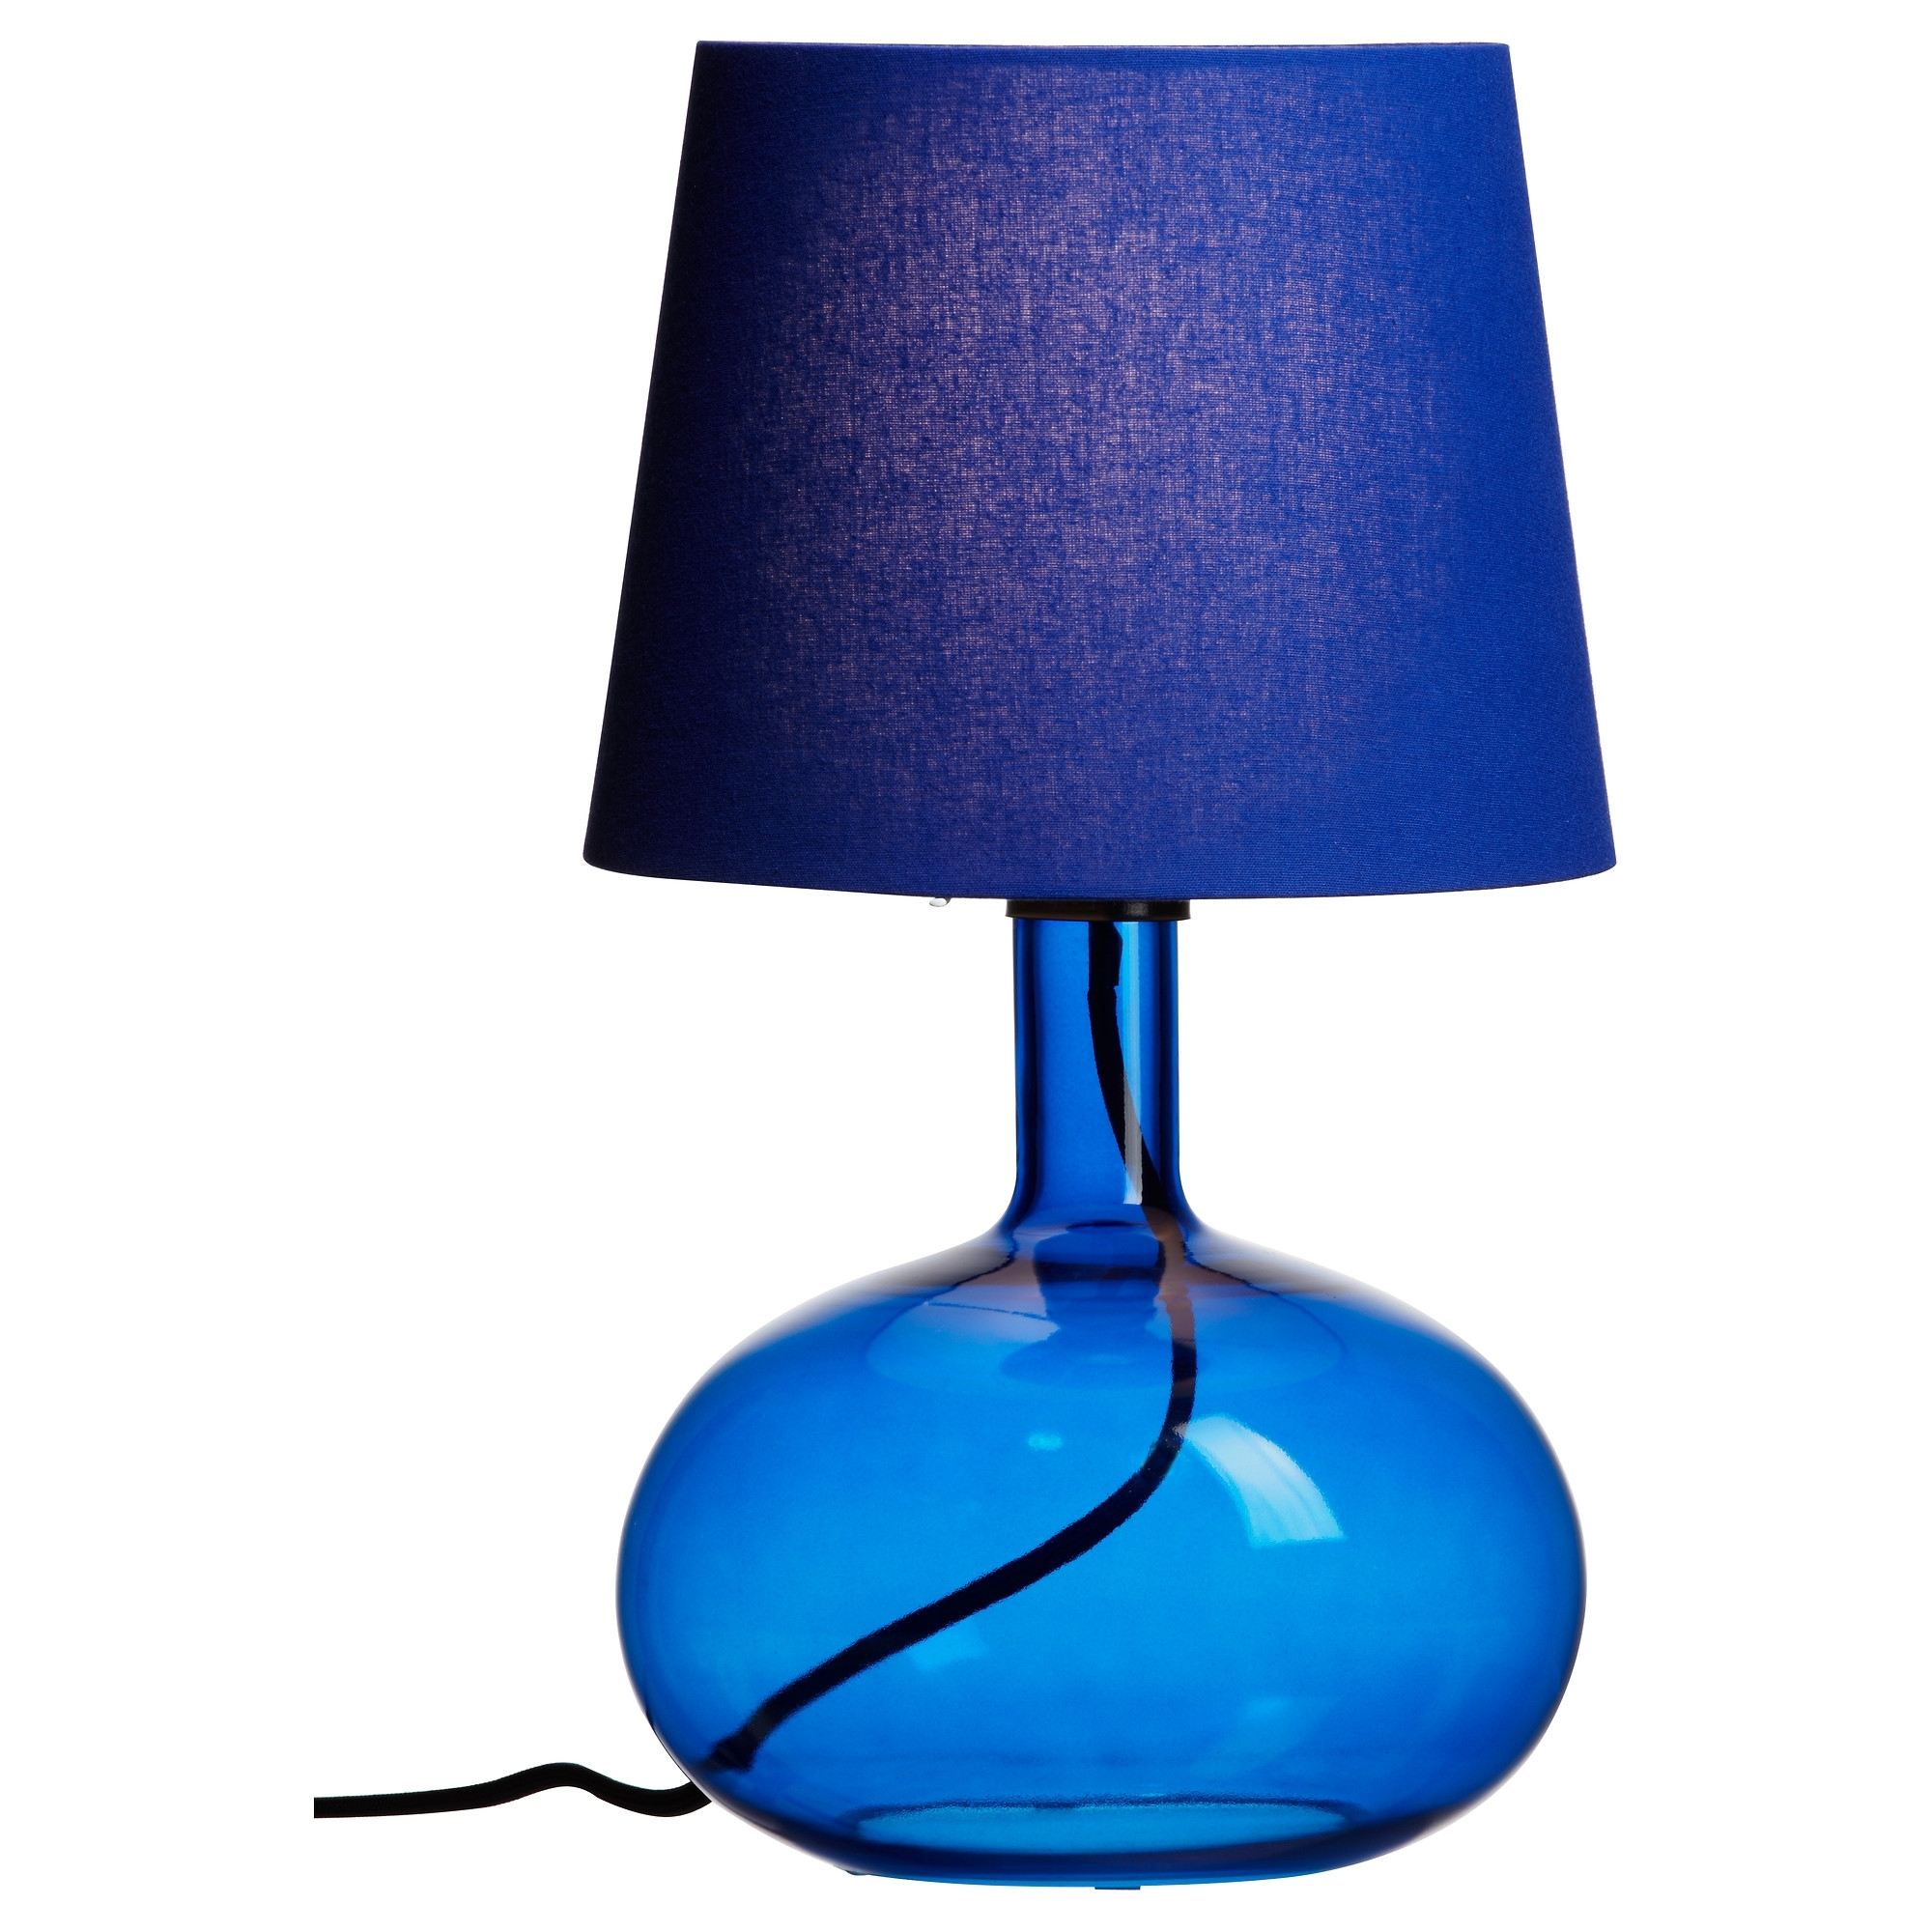 Shoplinkz, Lights With Living Room Table Lamps At Ikea (View 10 of 15)